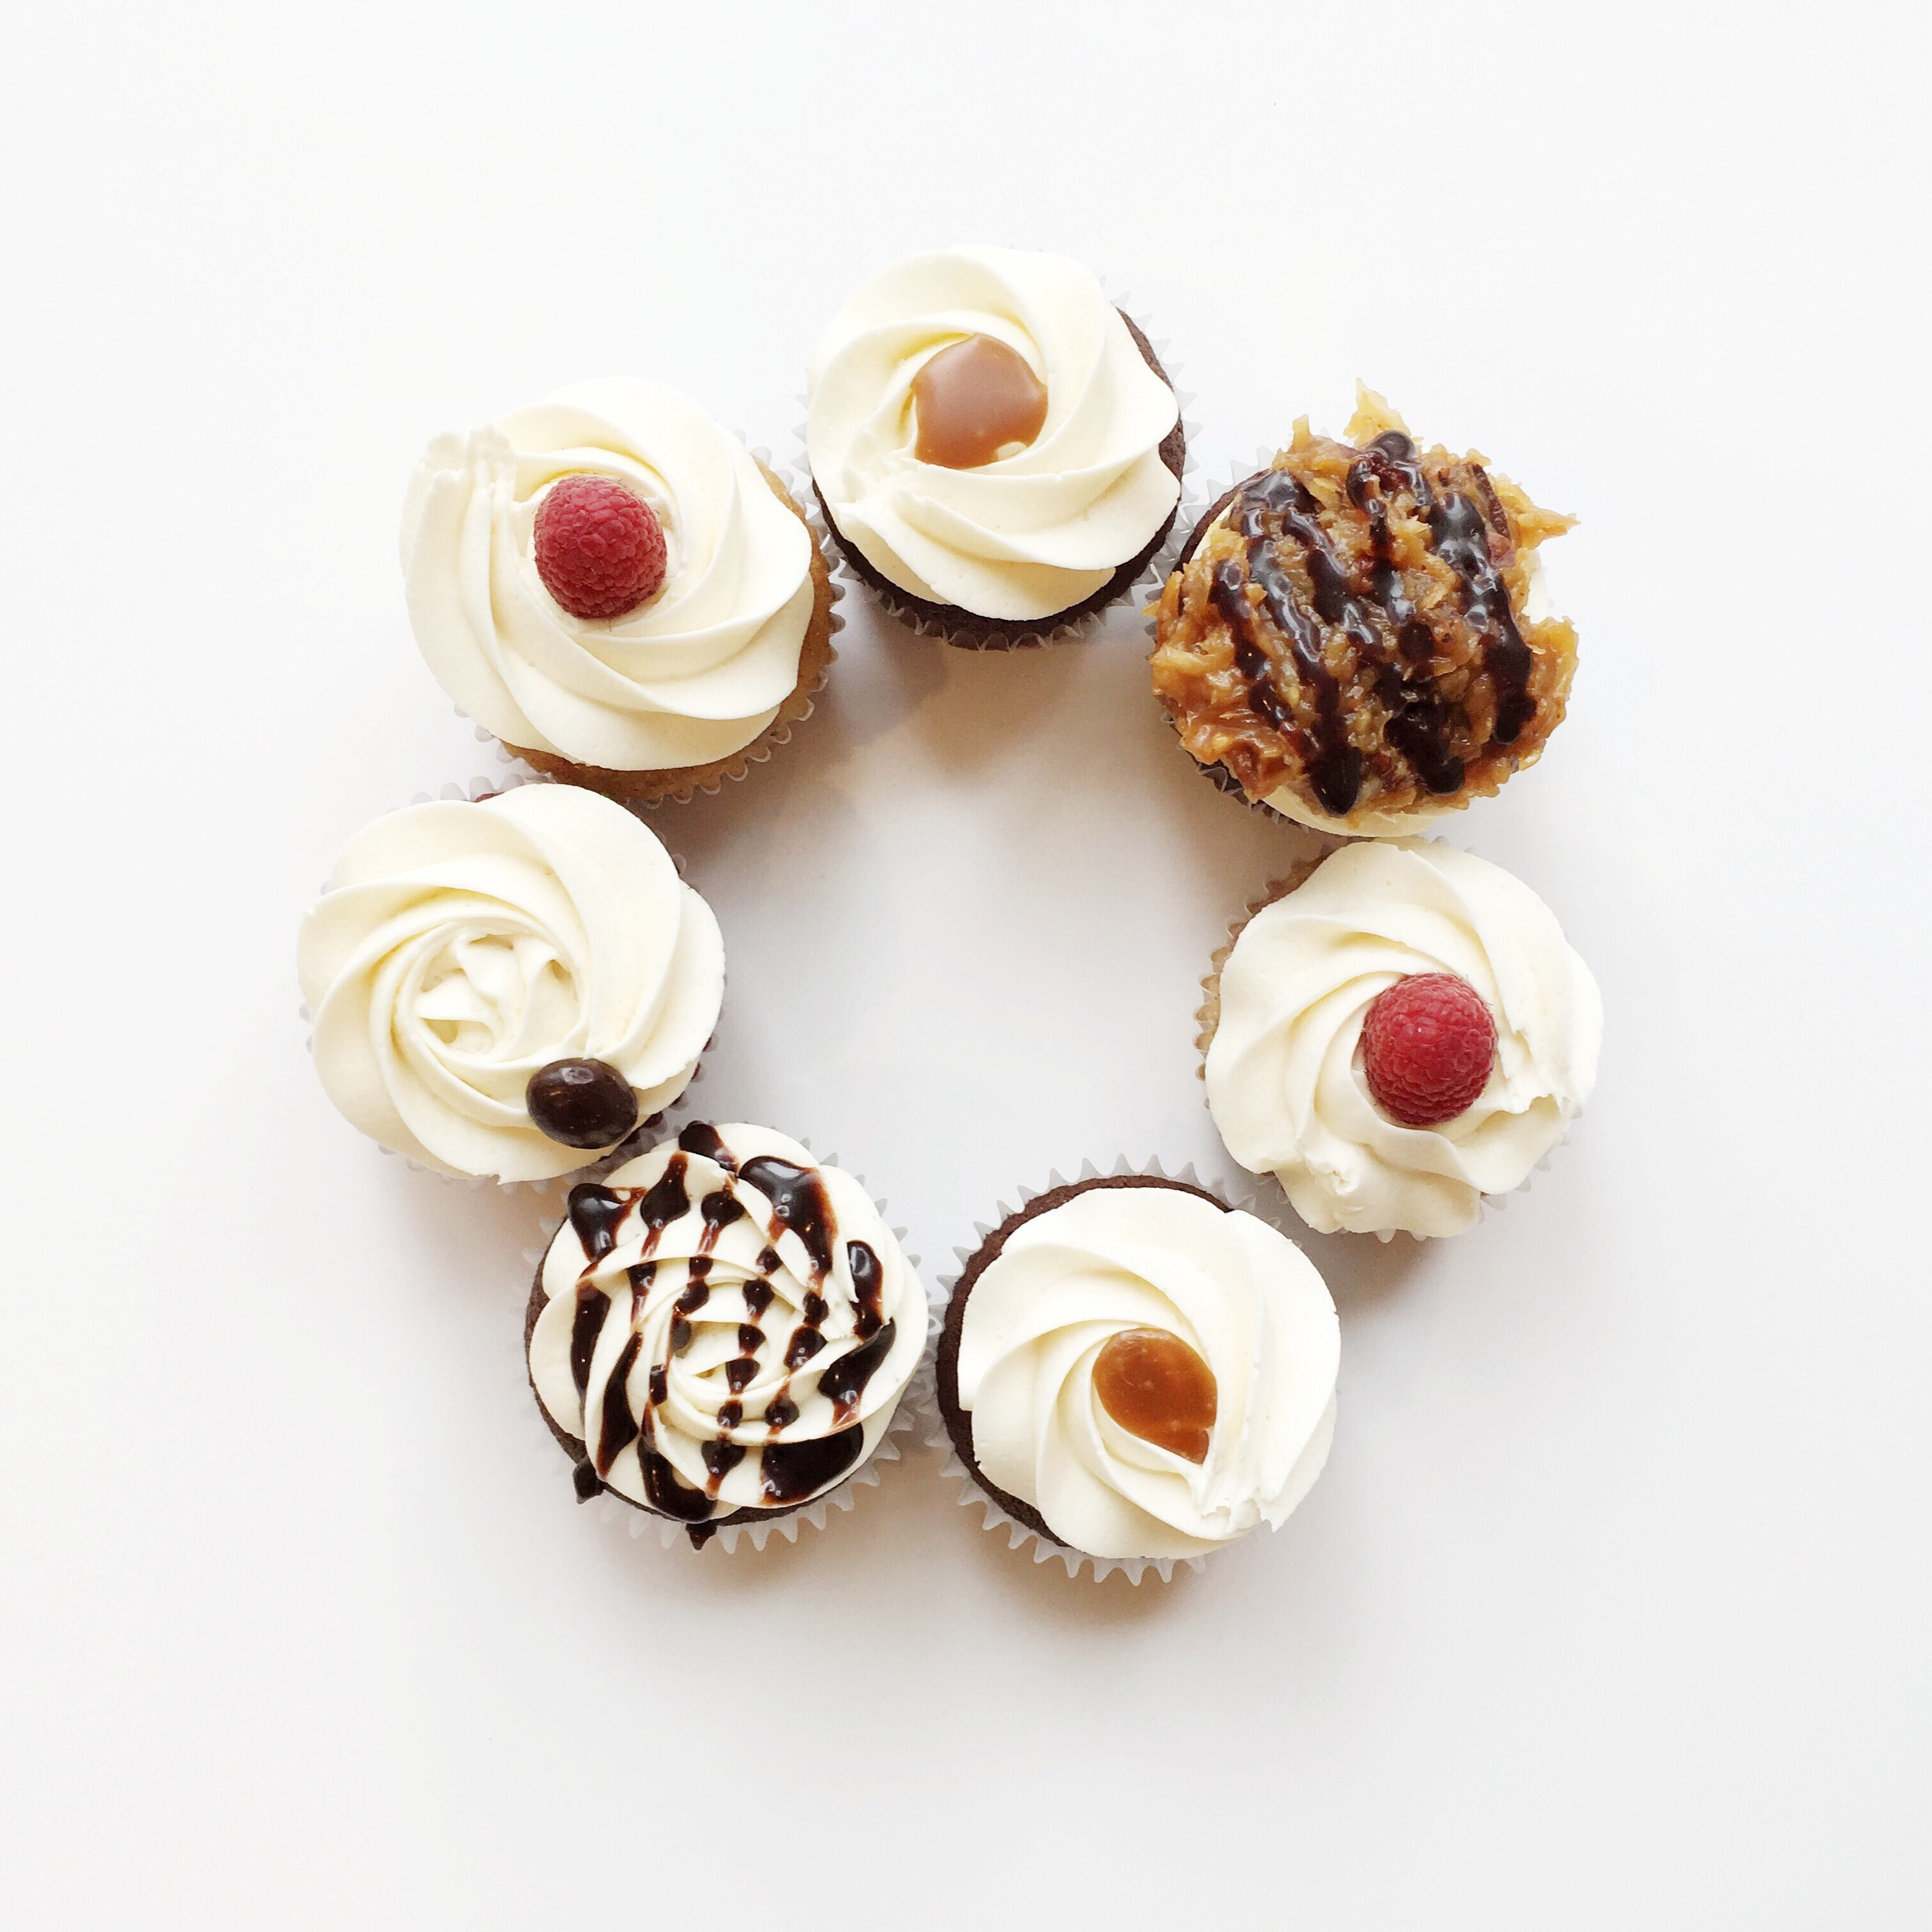 Gourmet cupcakes in a variety of flavors ready for you every day!